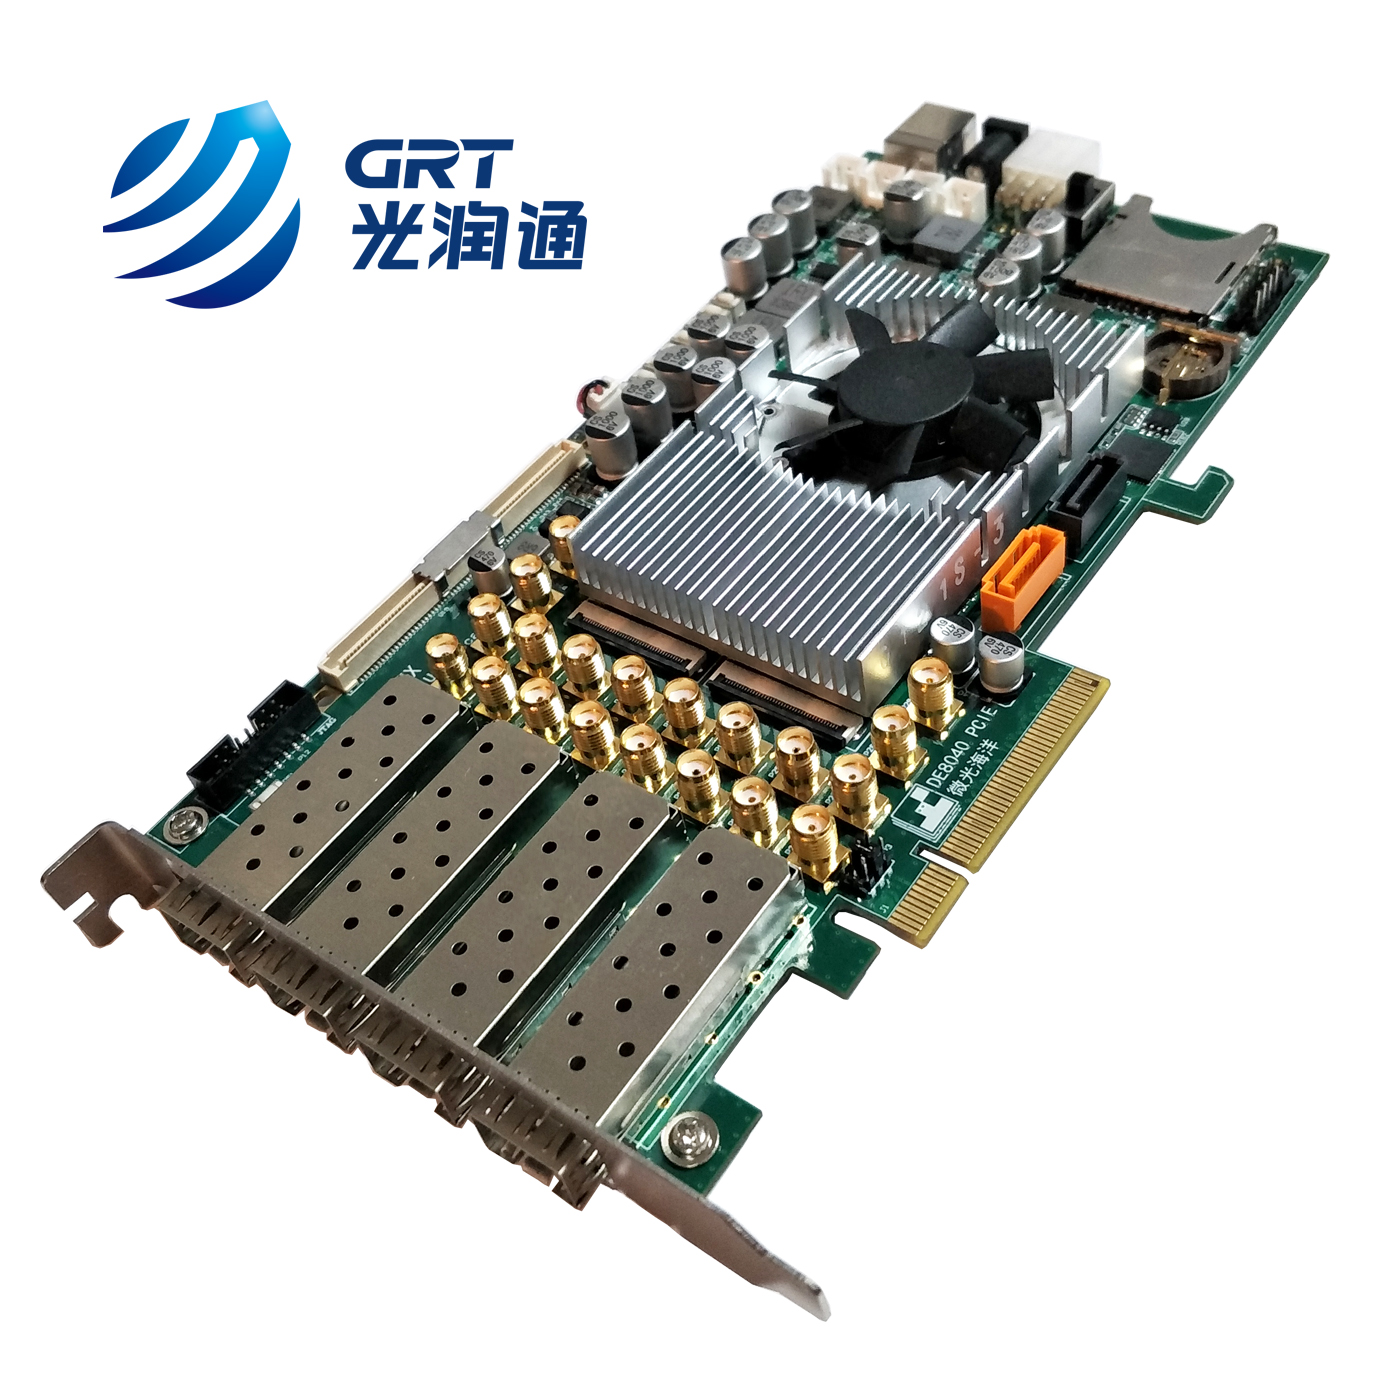 Xilinx's Kintex UltraScale FPGA controller chip PCIe 3.0 Development Board with 4 GTH